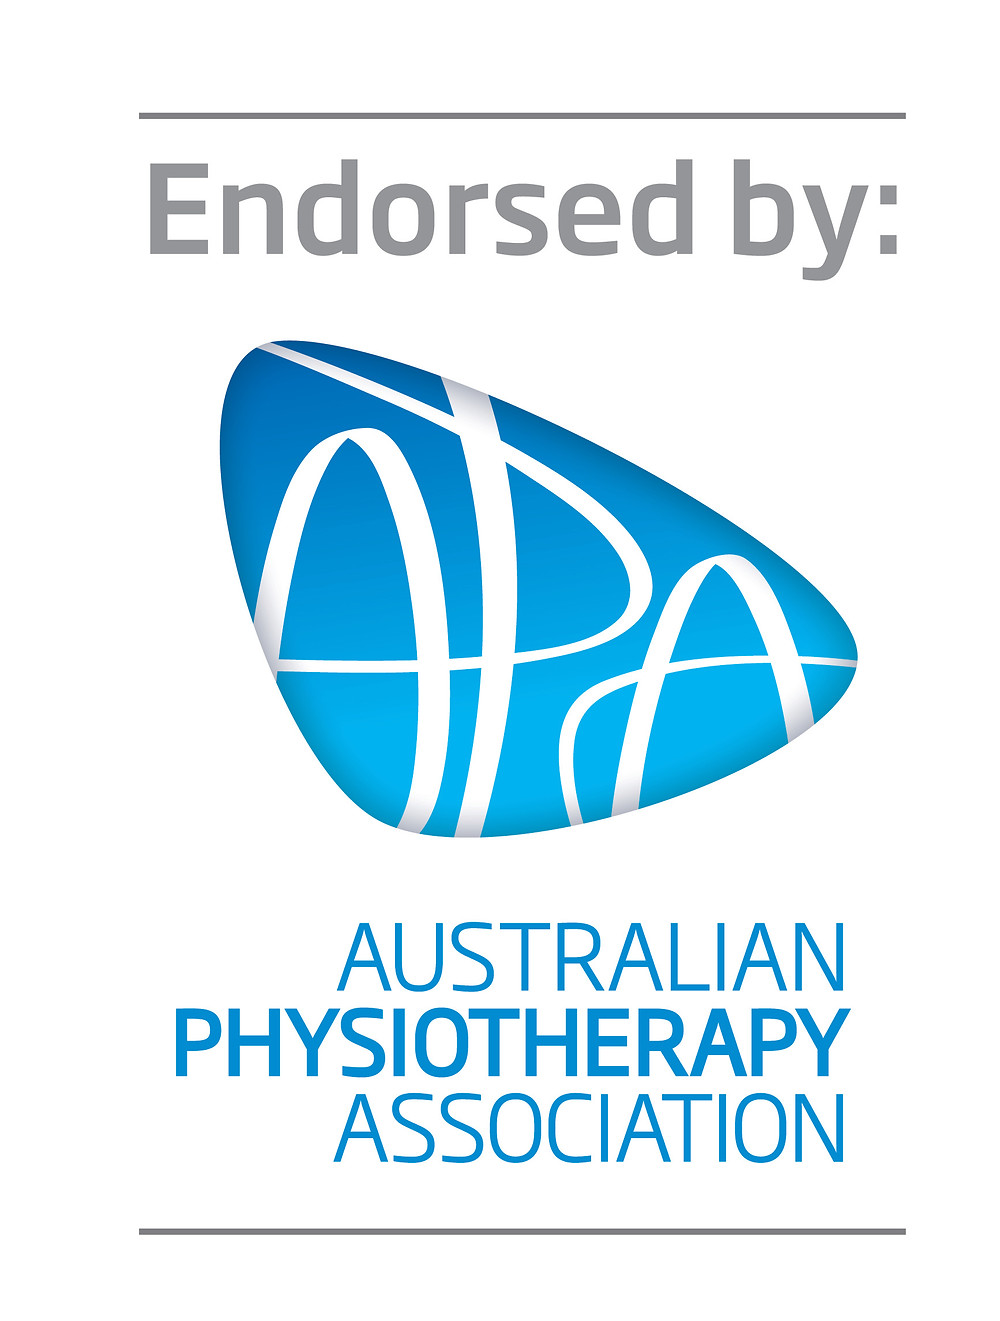 HipSaver is the only hip protector in Australia endorsed by The Australian Physiotherapy Association